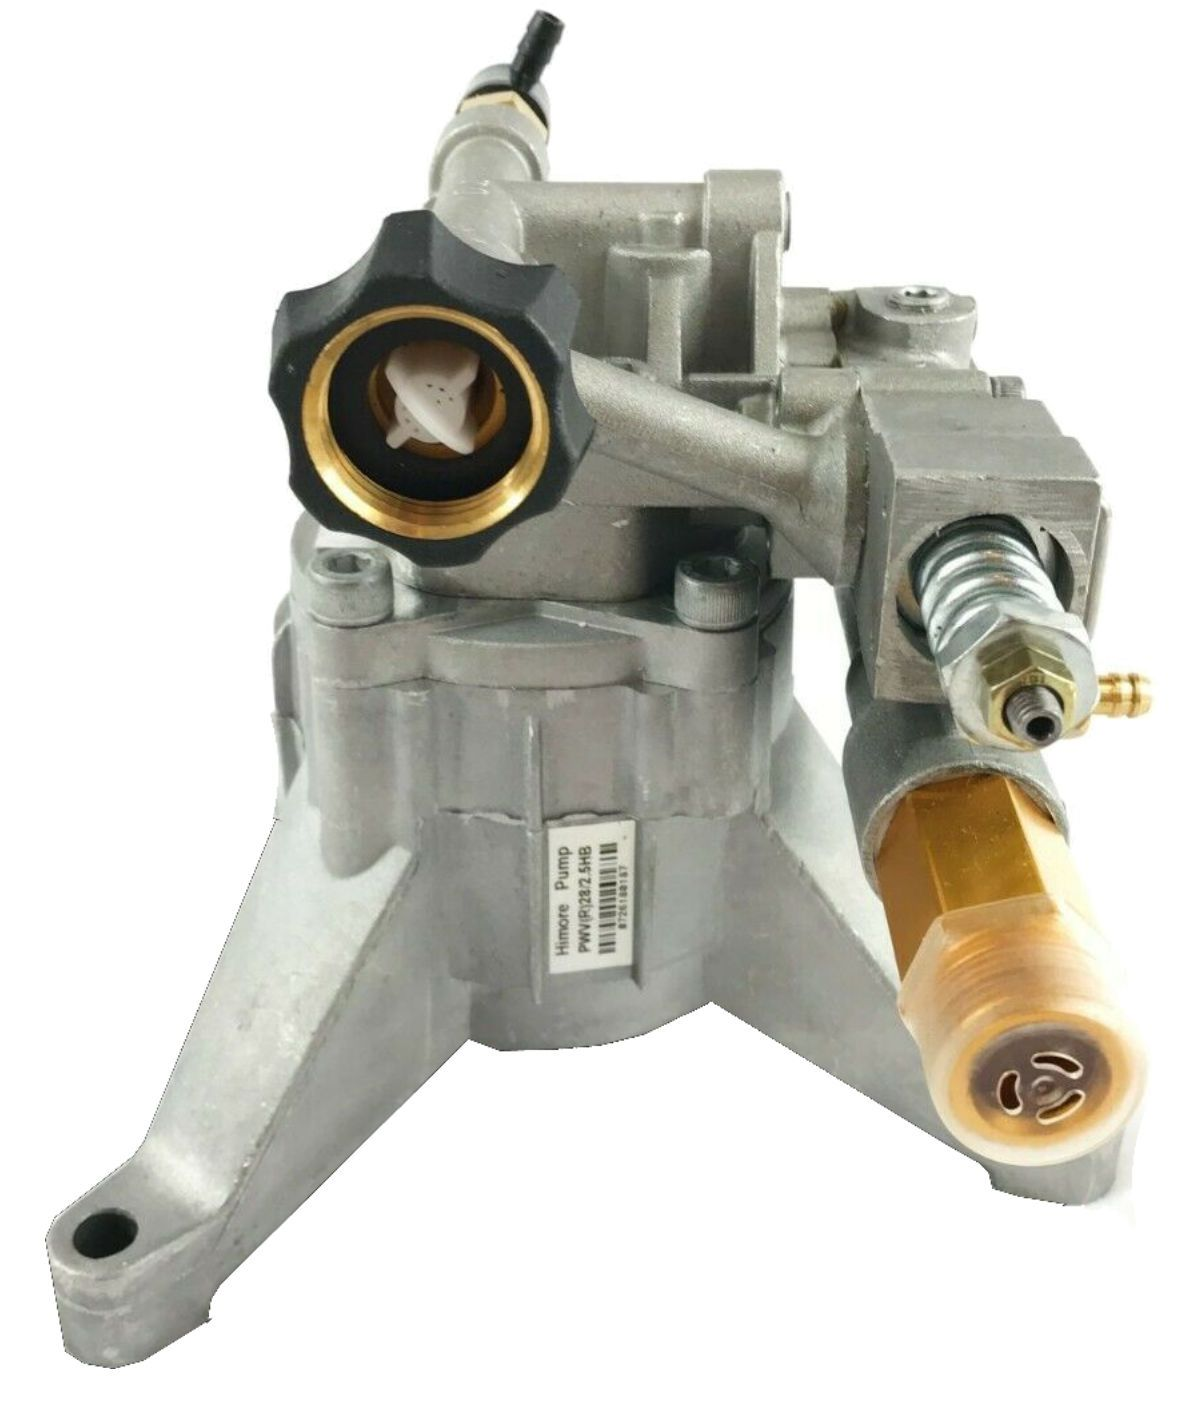 2700 PSI PRESSURE WASHER WATER PUMP Briggs & Stratton 020384-0 020390-0 - AE-Power